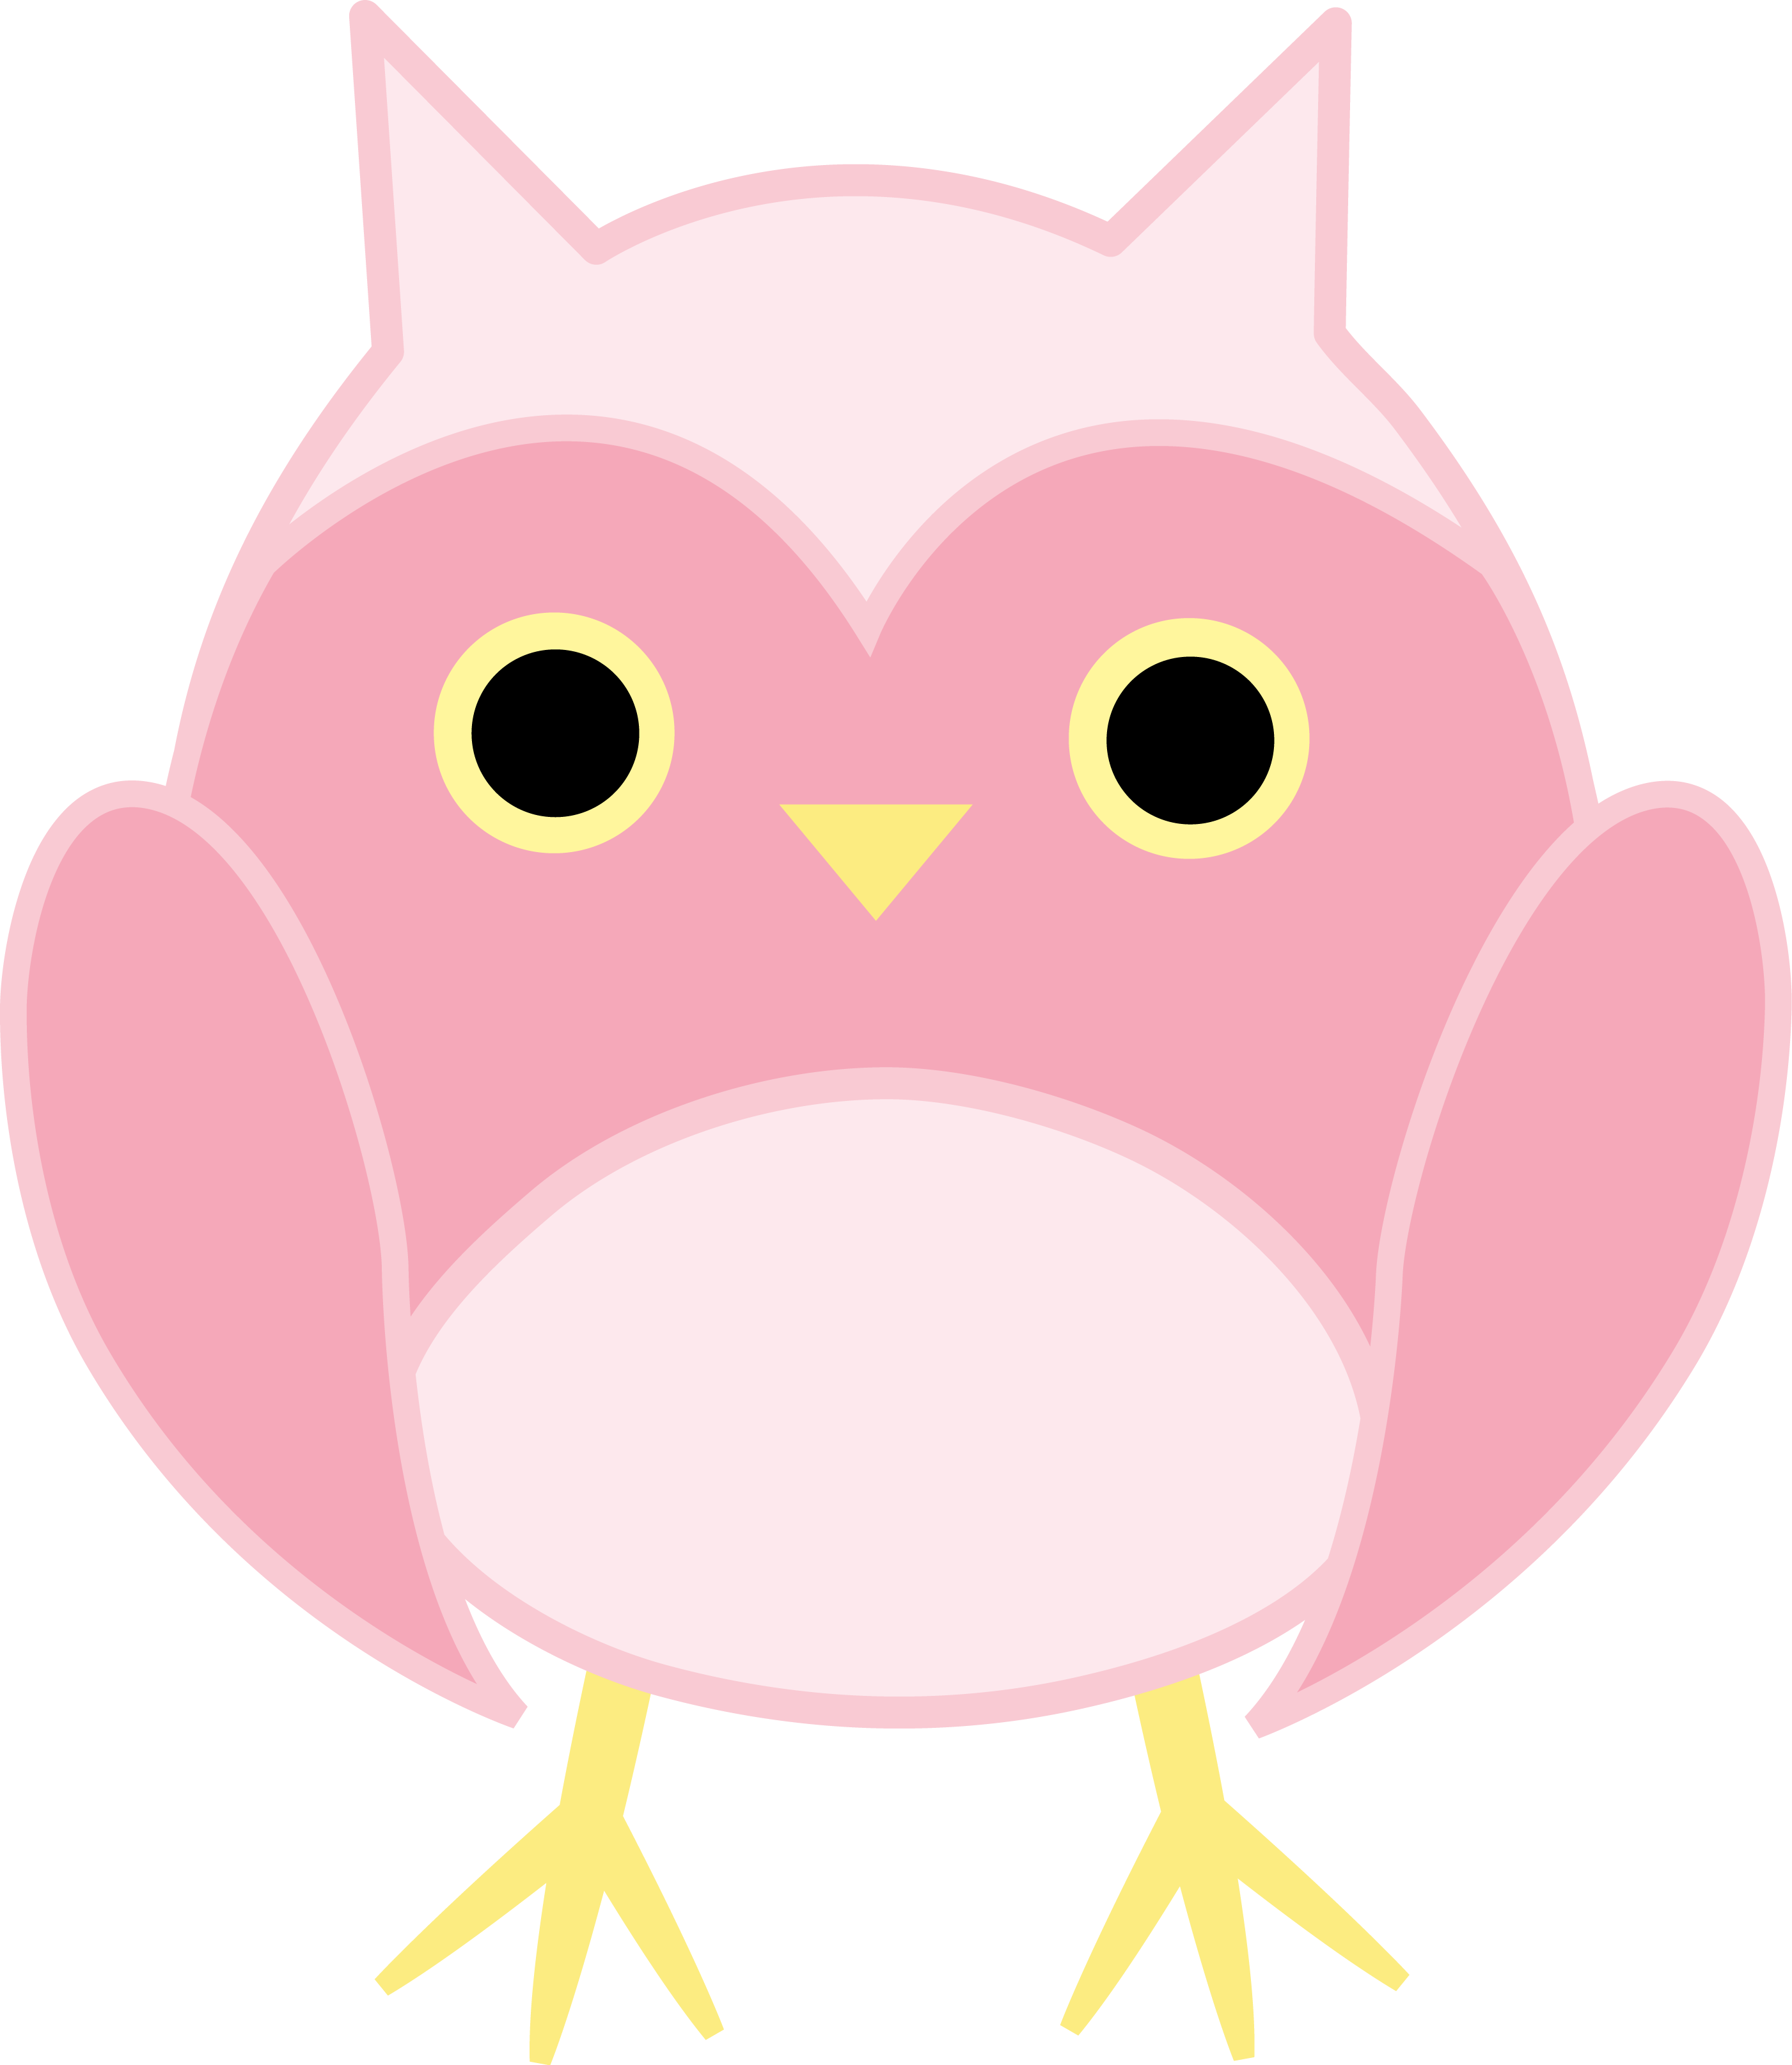 Cute owl free clip. Owls clipart pink